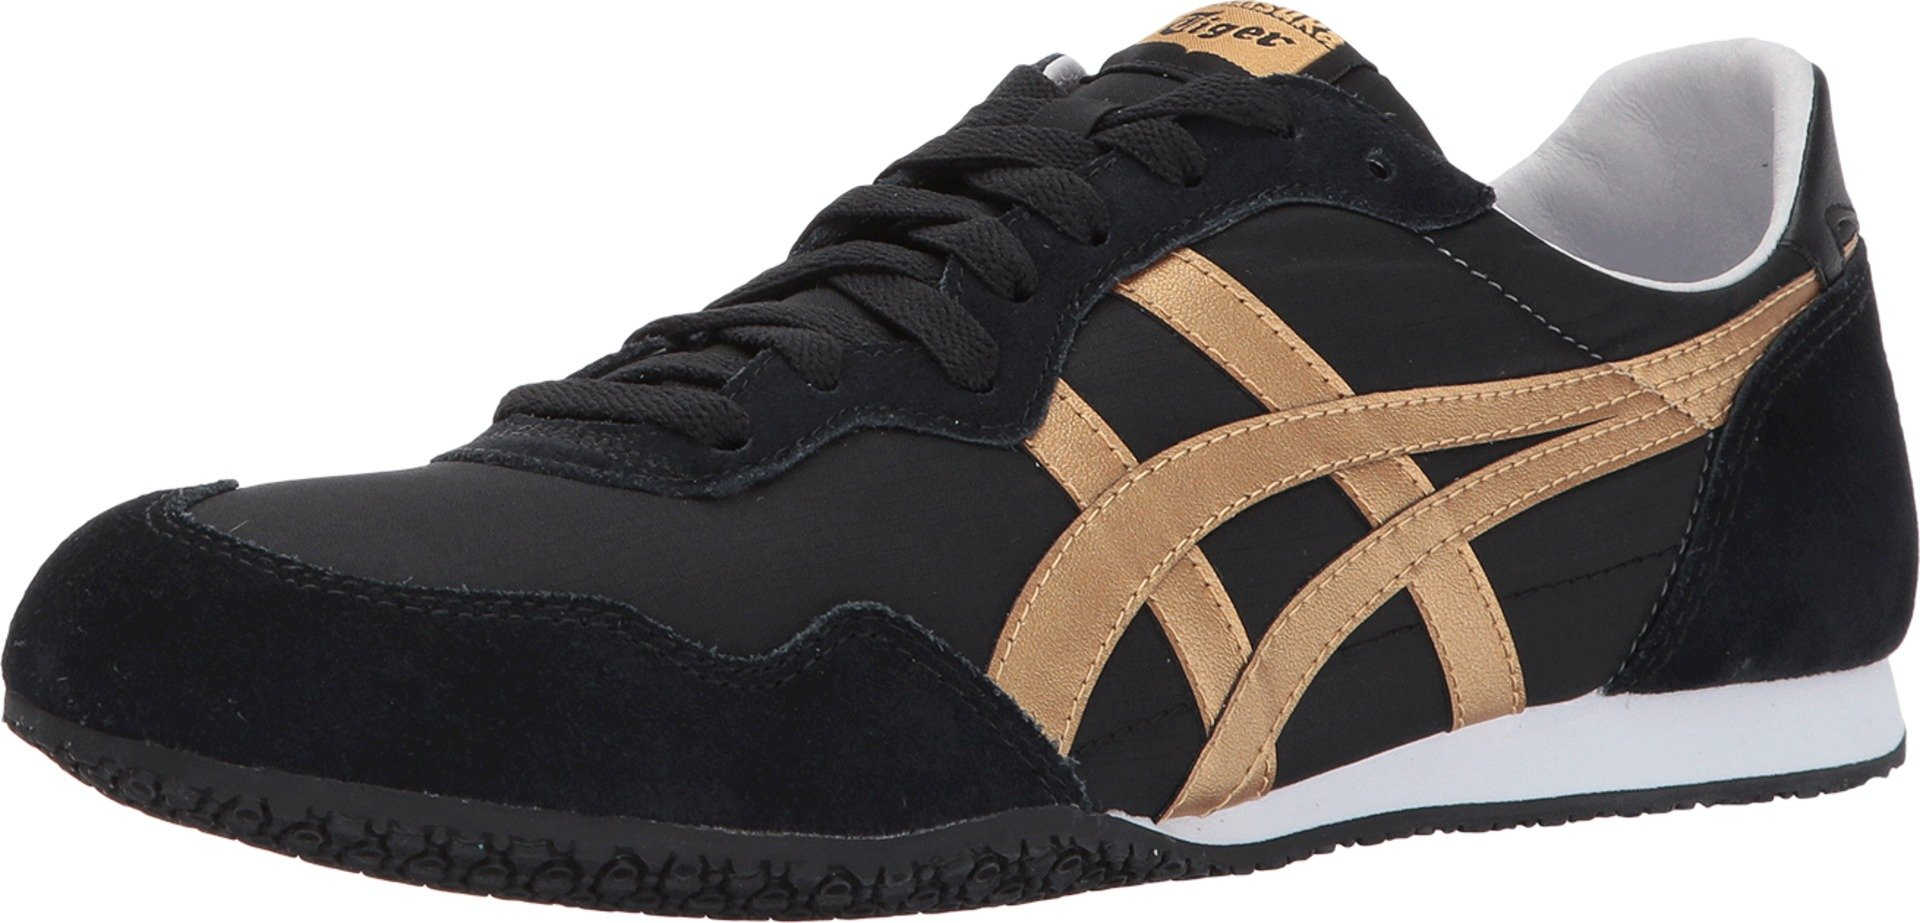 check out fe4af df800 Galleon - Onitsuka Tiger By Asics Unisex Serrano Black/Gold ...